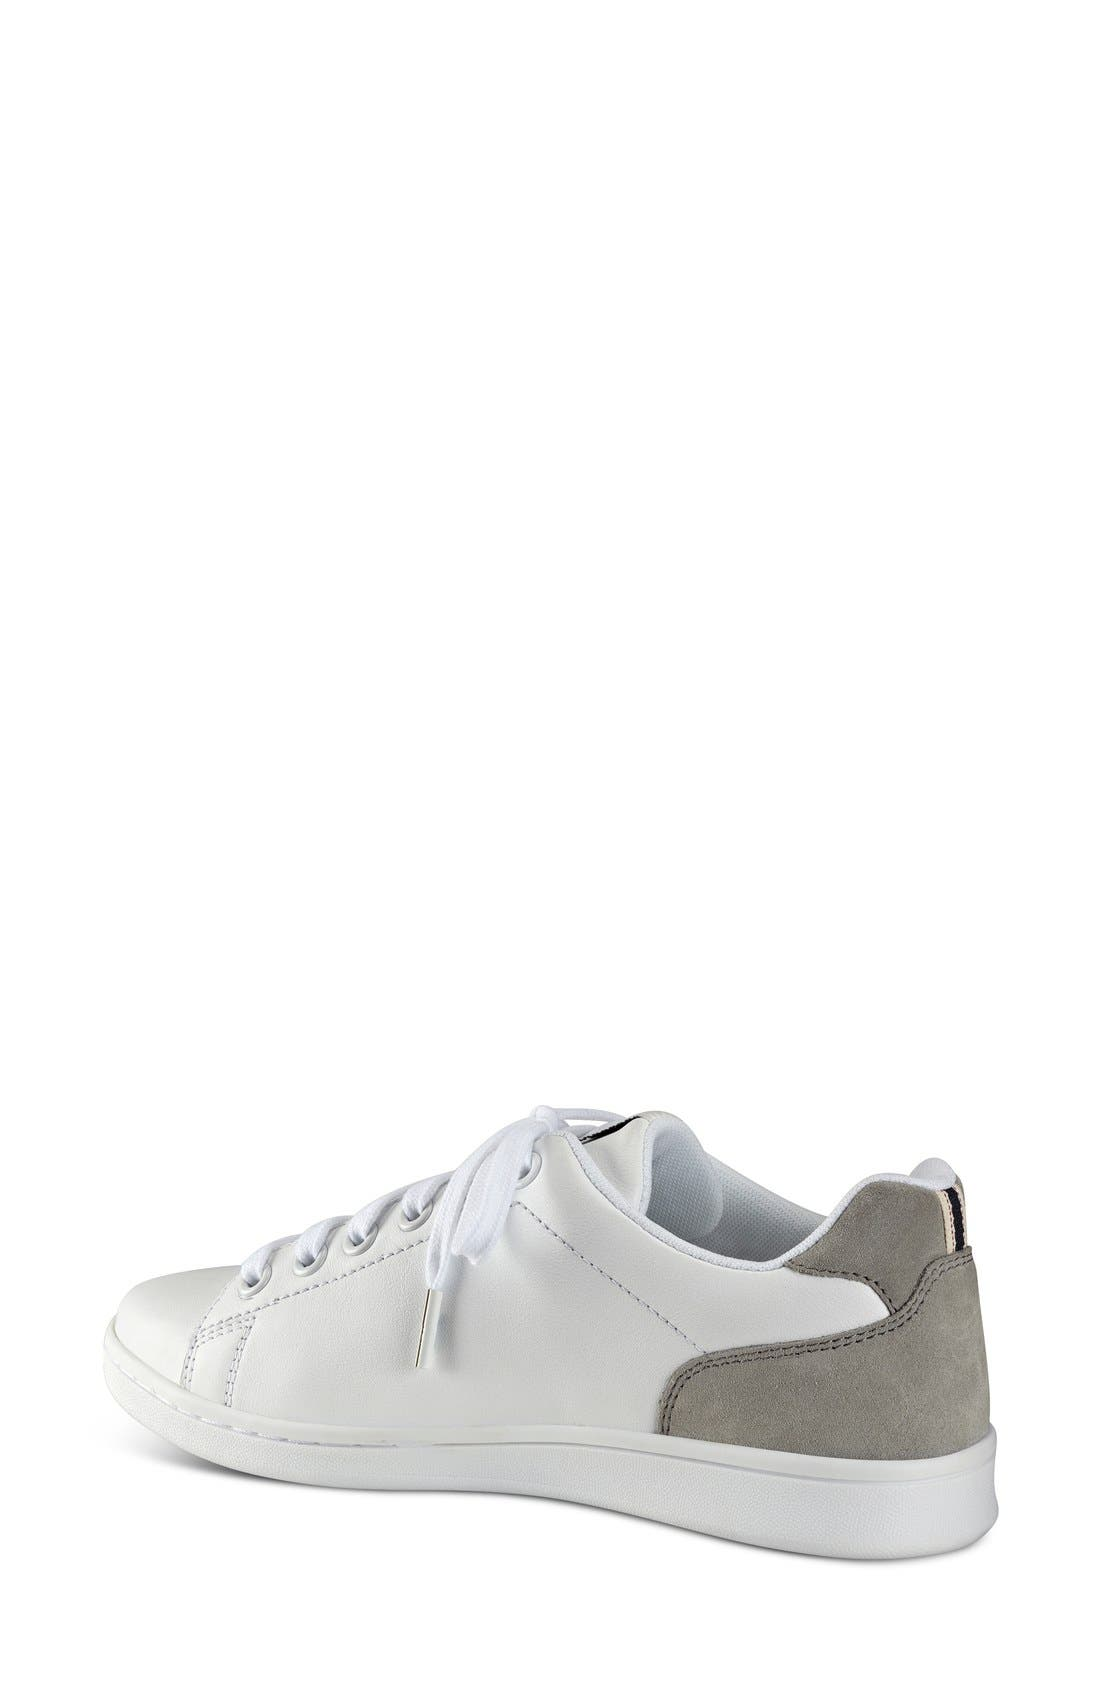 'Chapala' Sneaker,                             Alternate thumbnail 3, color,                             PURE WHITE LEATHER/ STEEL GREY